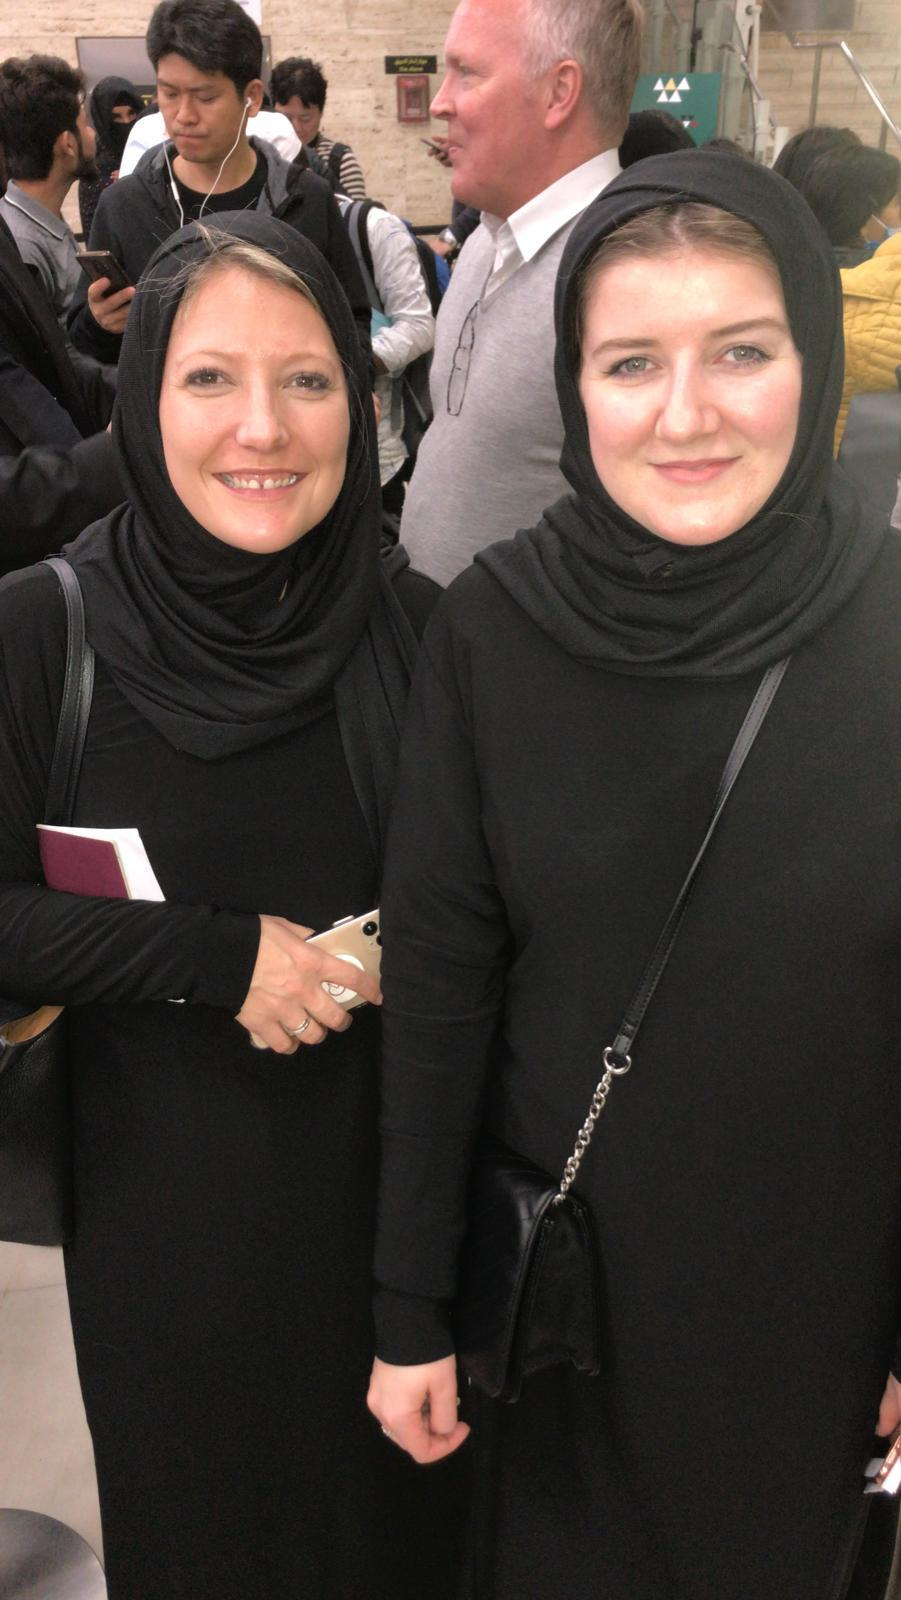 Two ladies in Middle Eastern dress